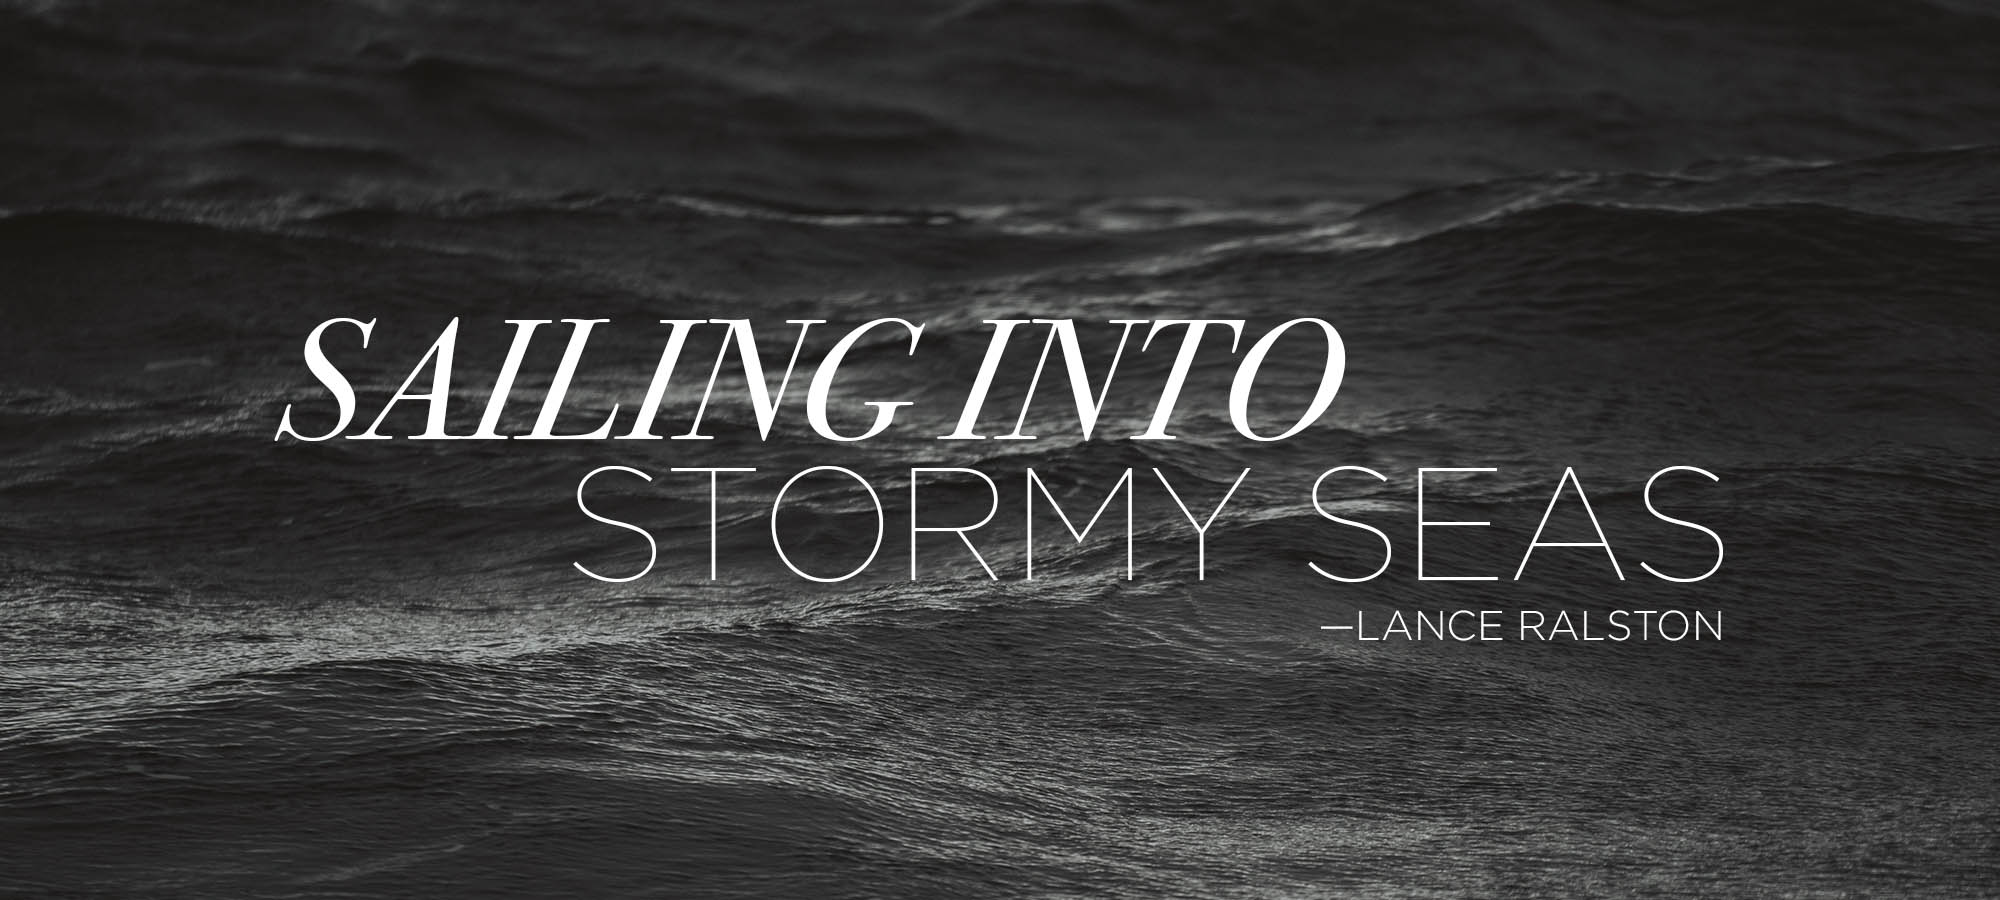 Sailing into Stormy Seas